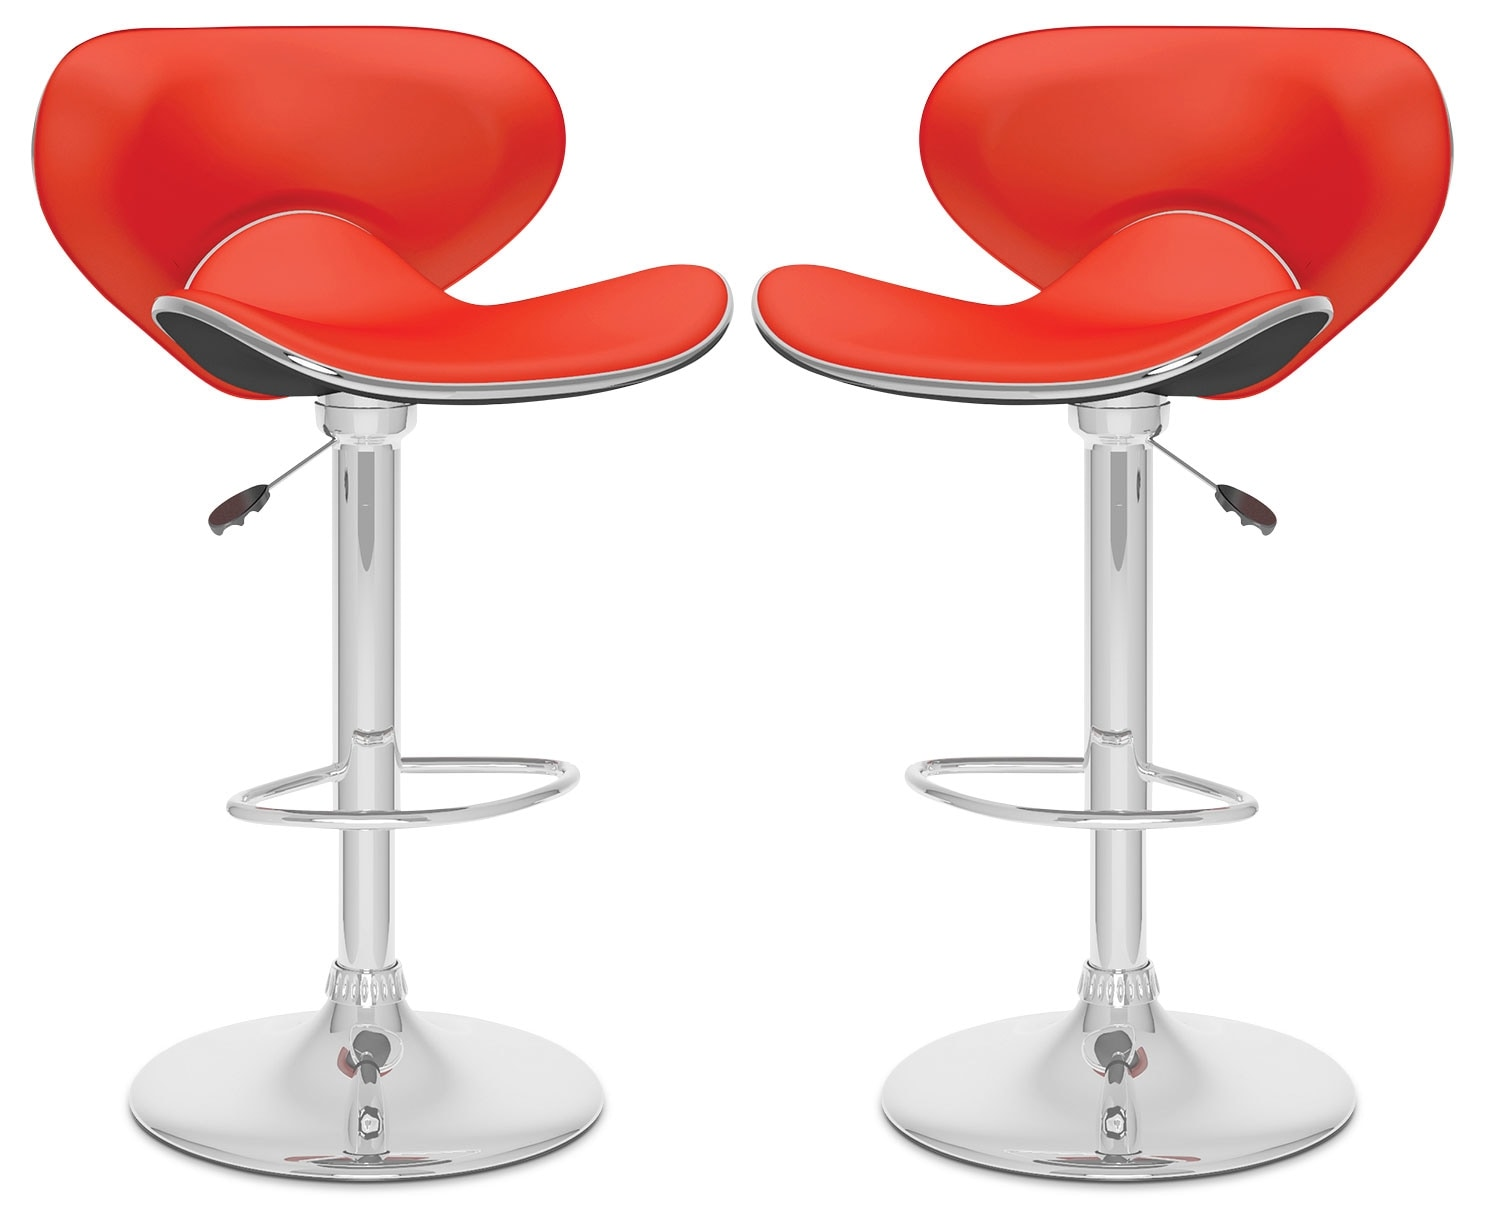 CorLiving Curved Form-Fitting Adjustable Bar Stool, Set of 2 – Red